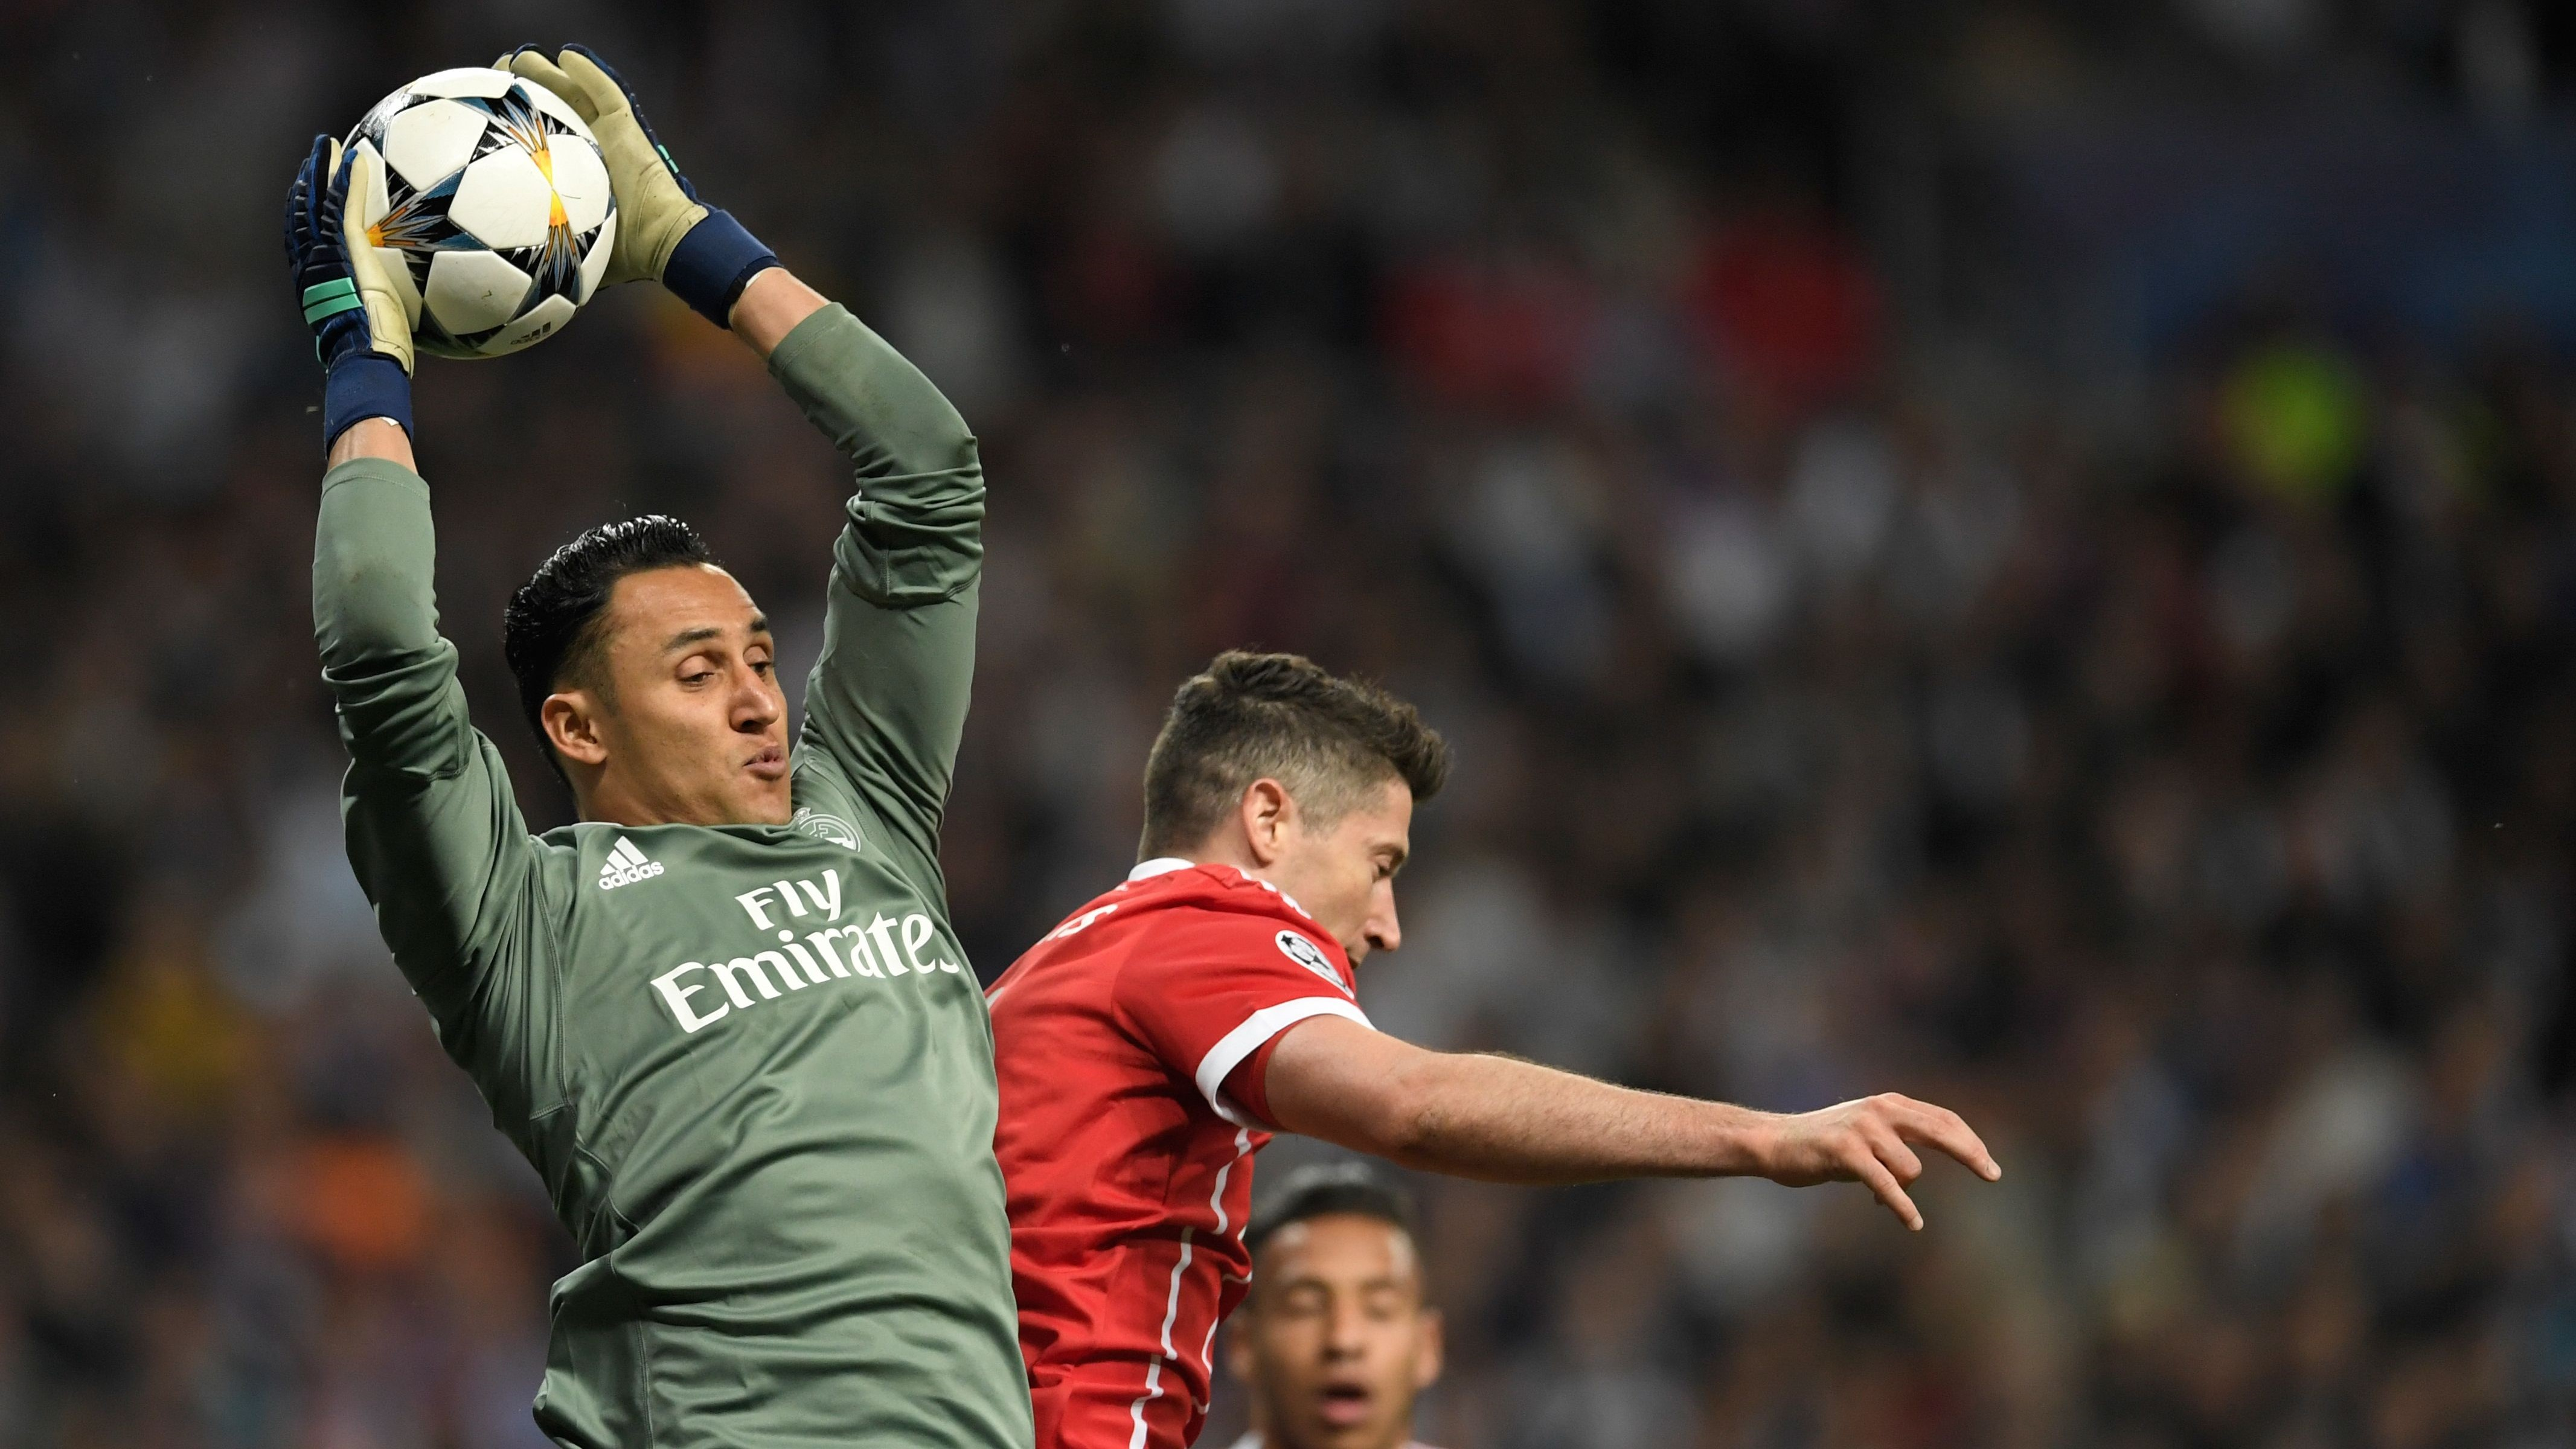 Keylor Navas Robert Lewandowski Real Madrid Bayern Munich UCL 01052018